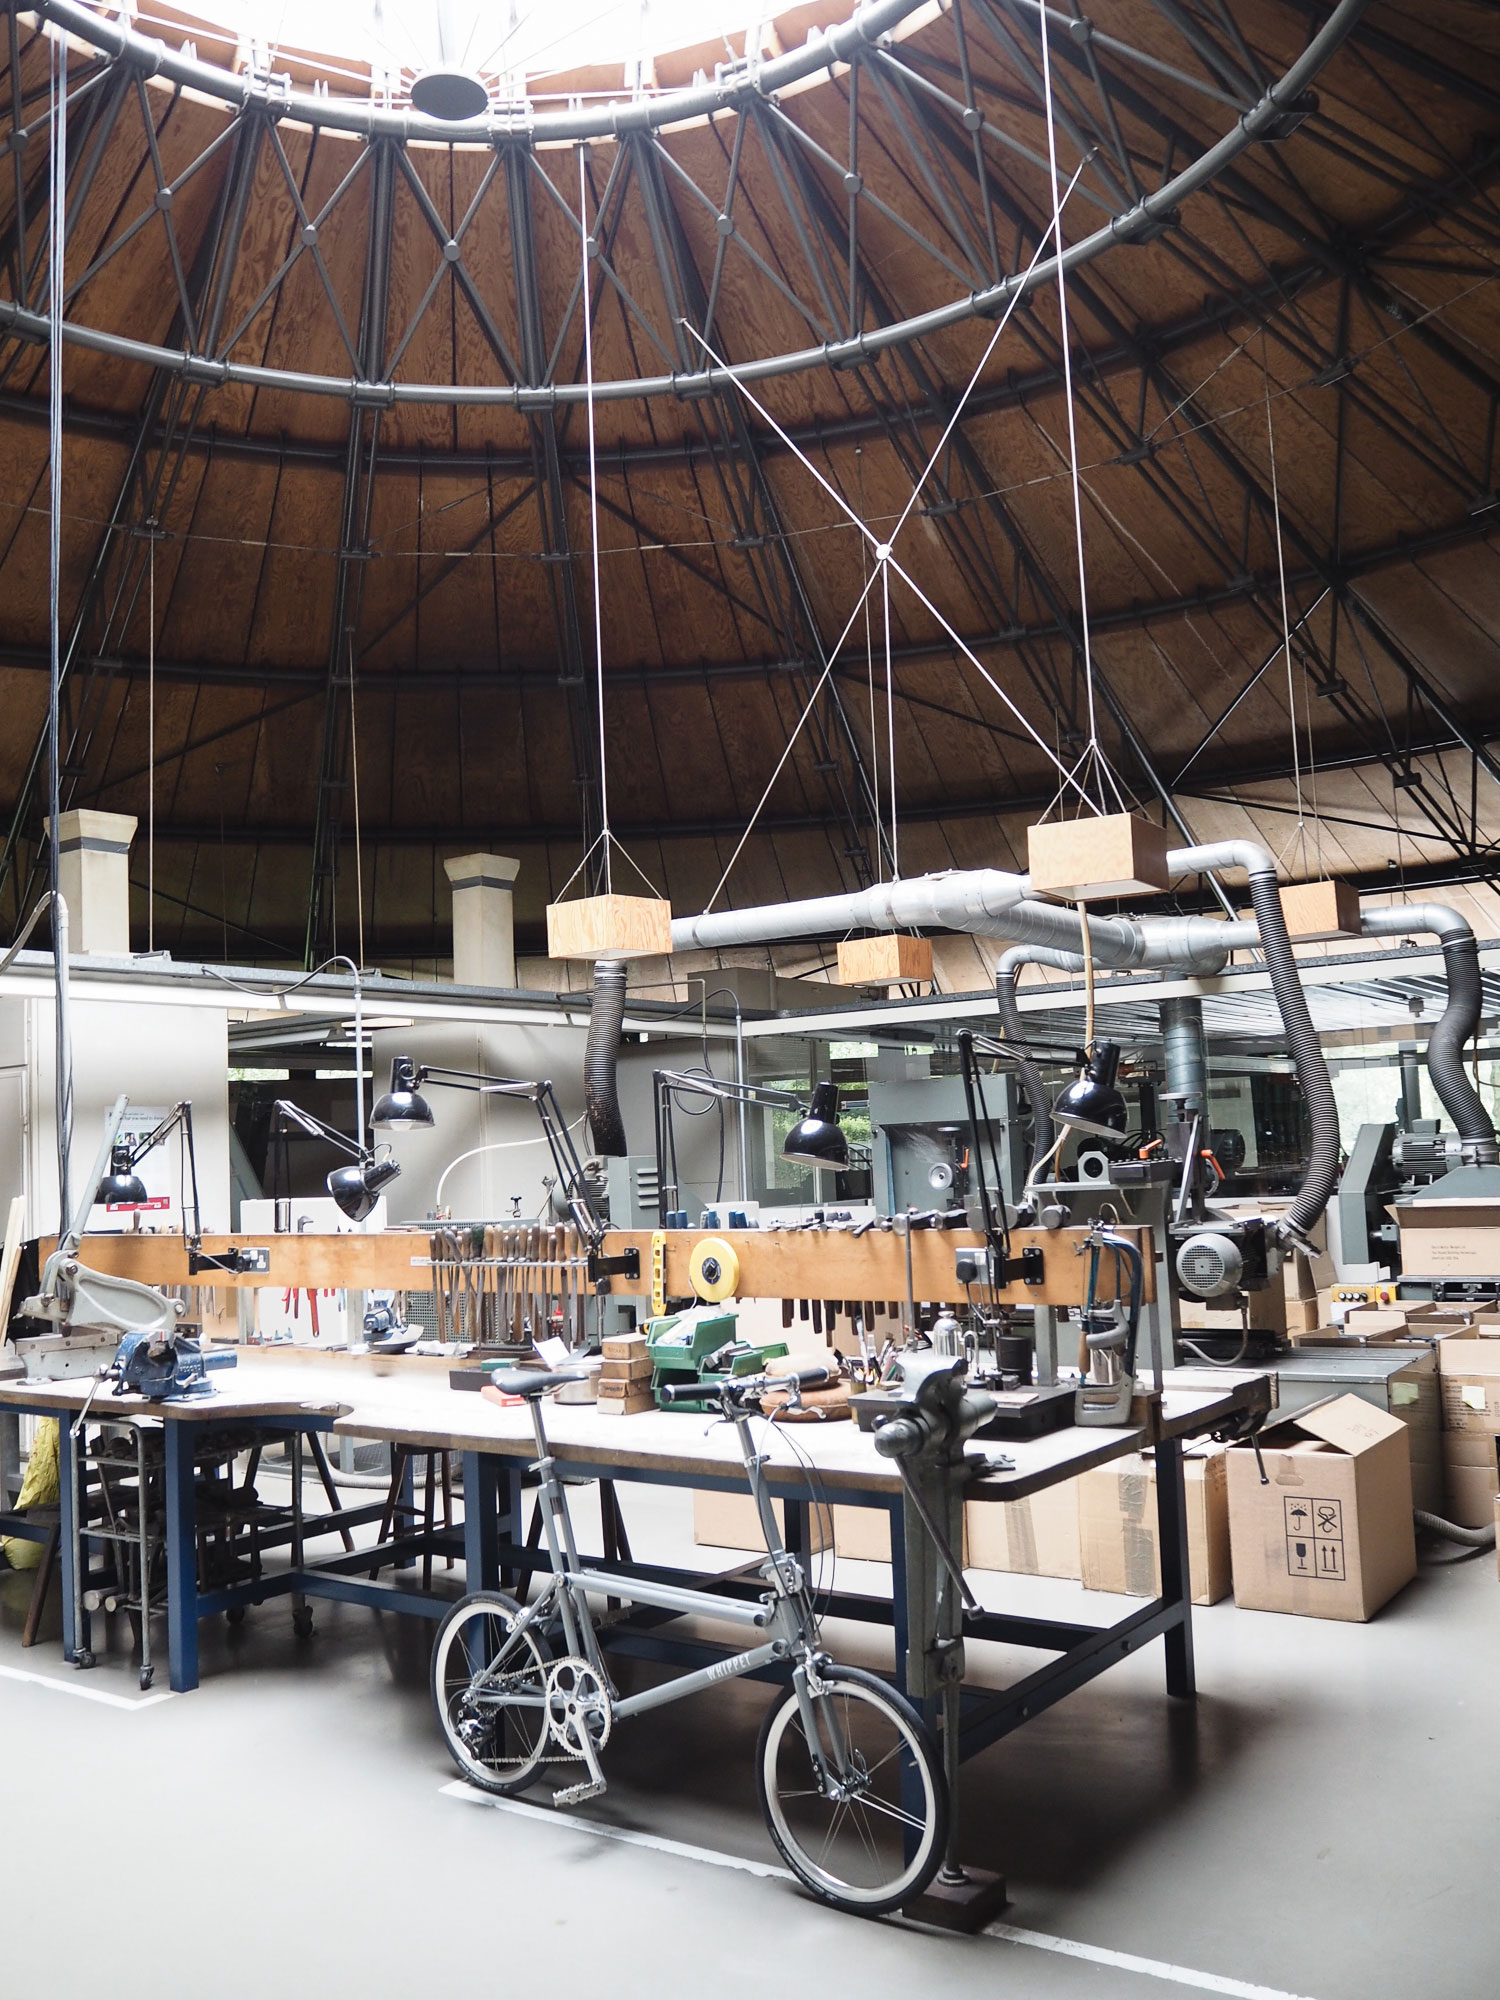 Whippet-Bicycle-at-David Mellor-Round-Building-Factory-Prototyping-Bench.jpg